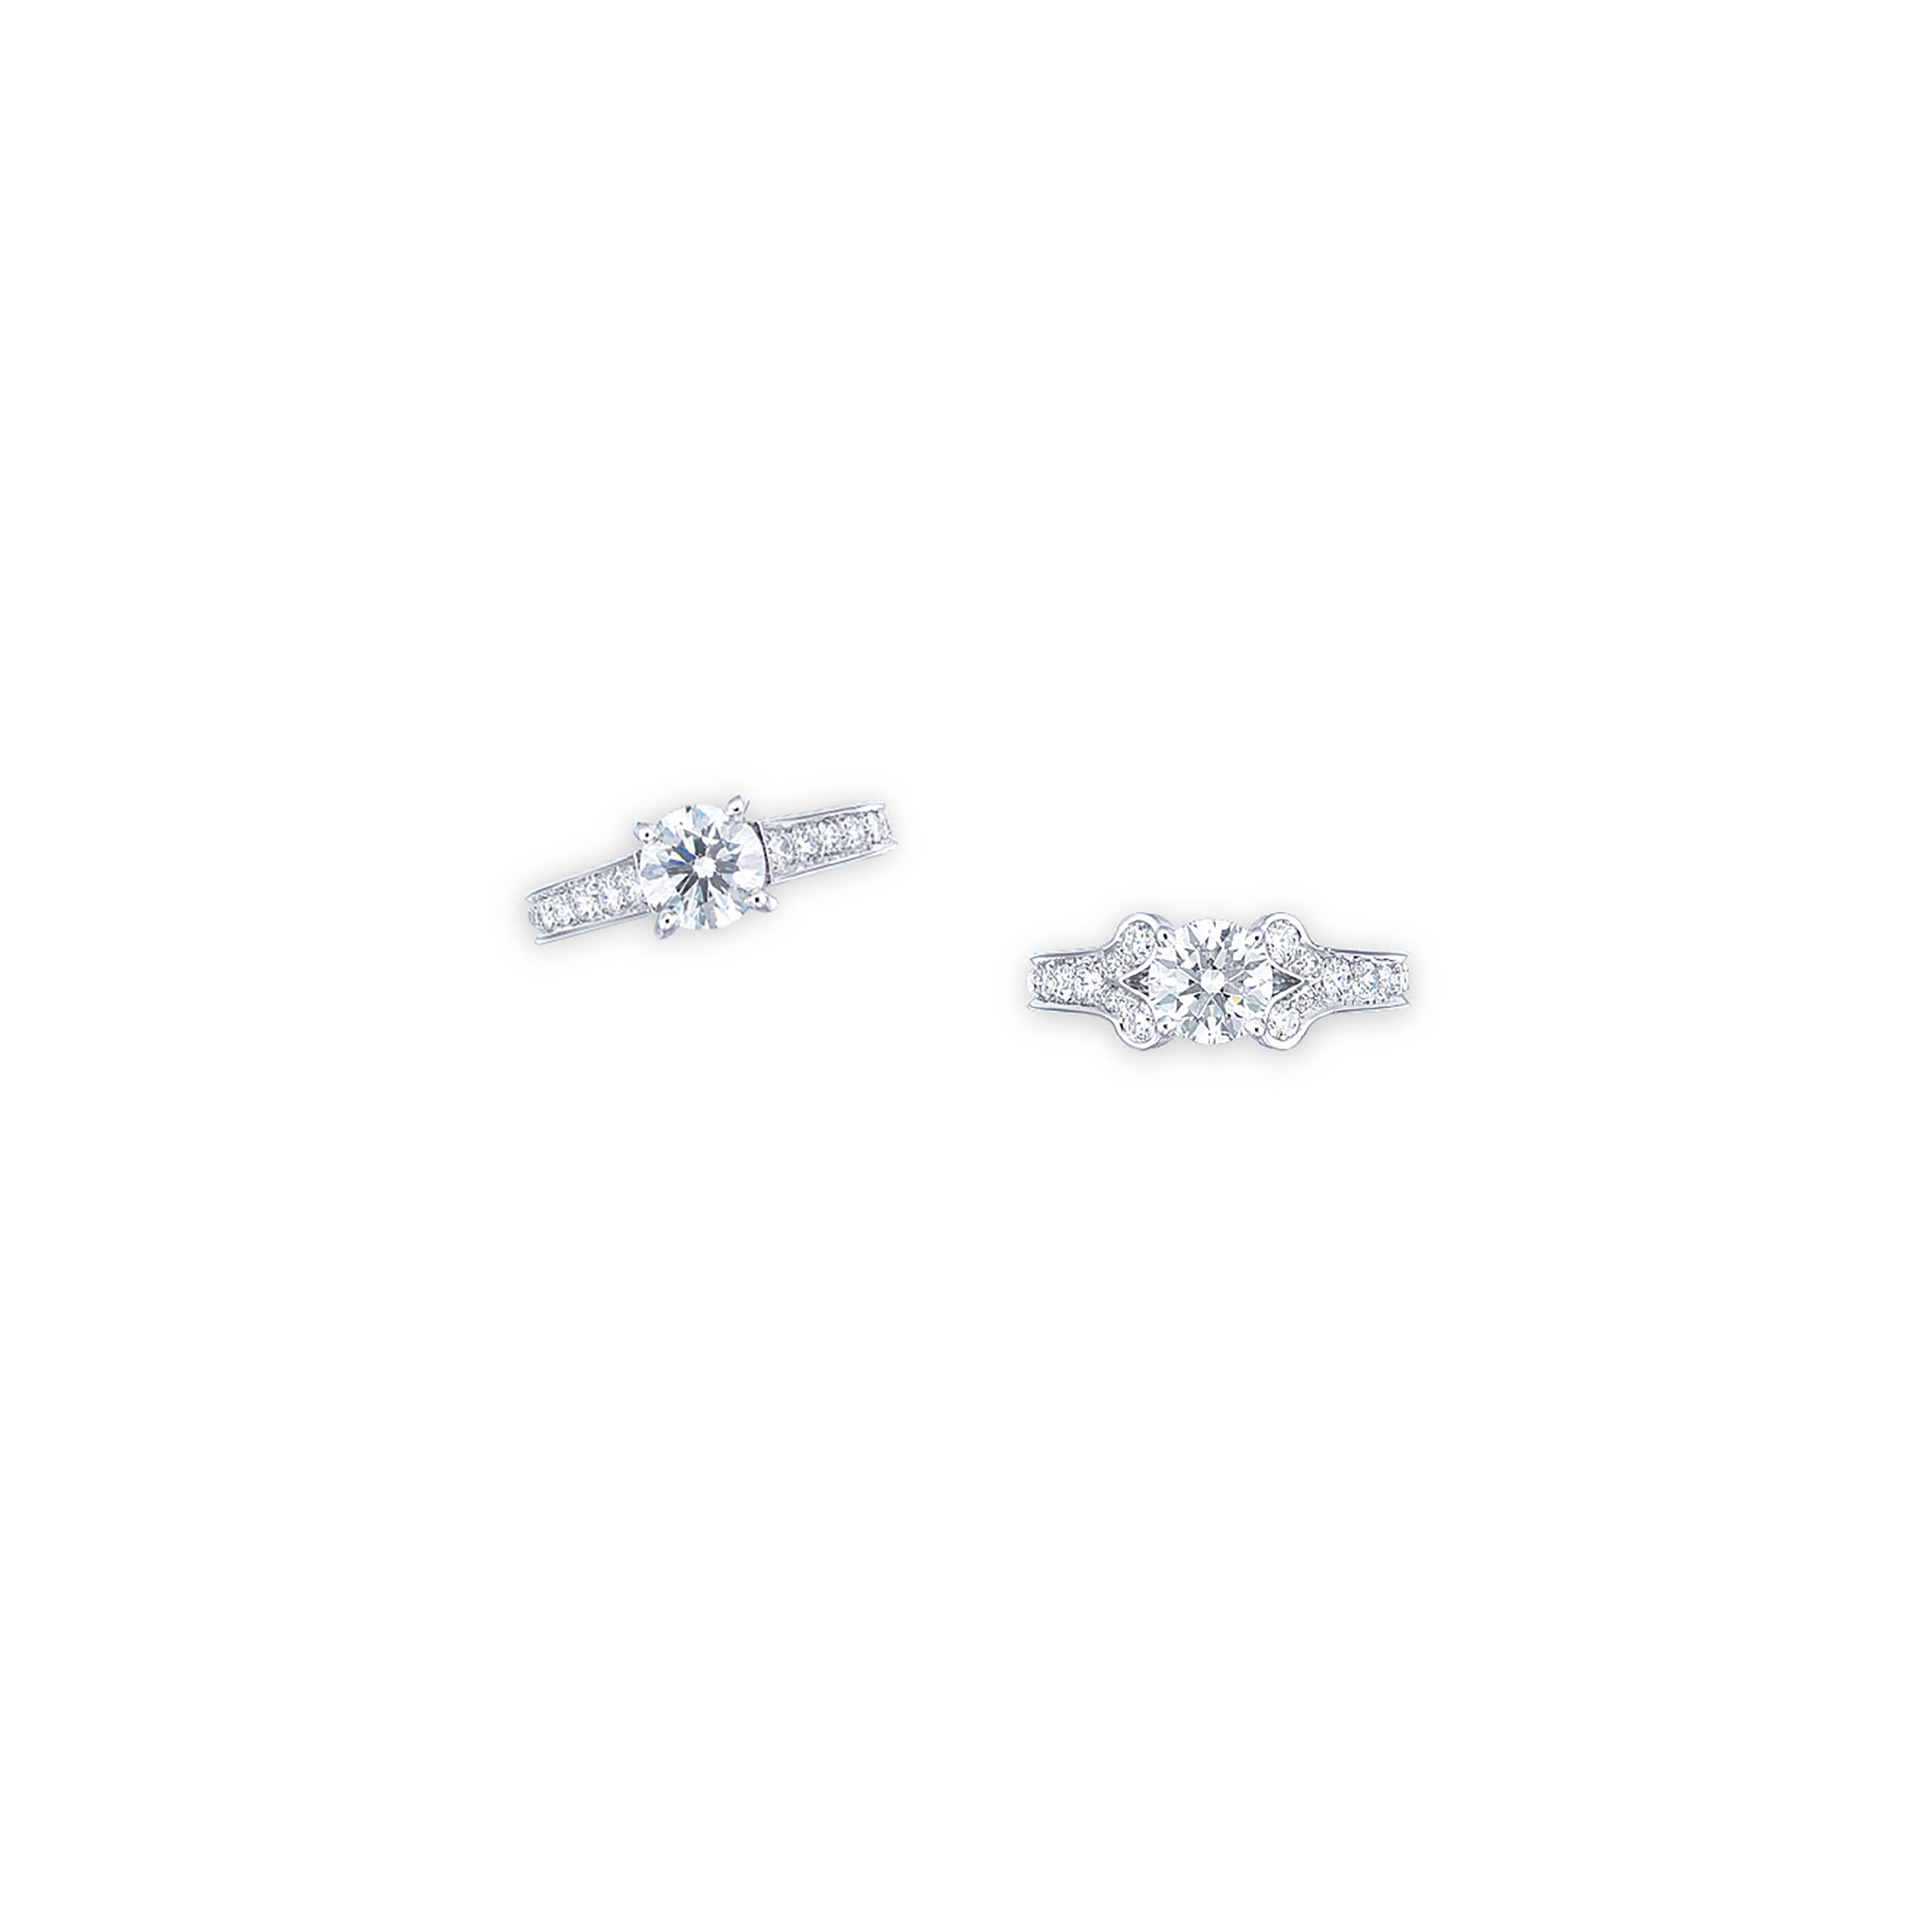 TWO DIAMOND RINGS, BY CARTIER